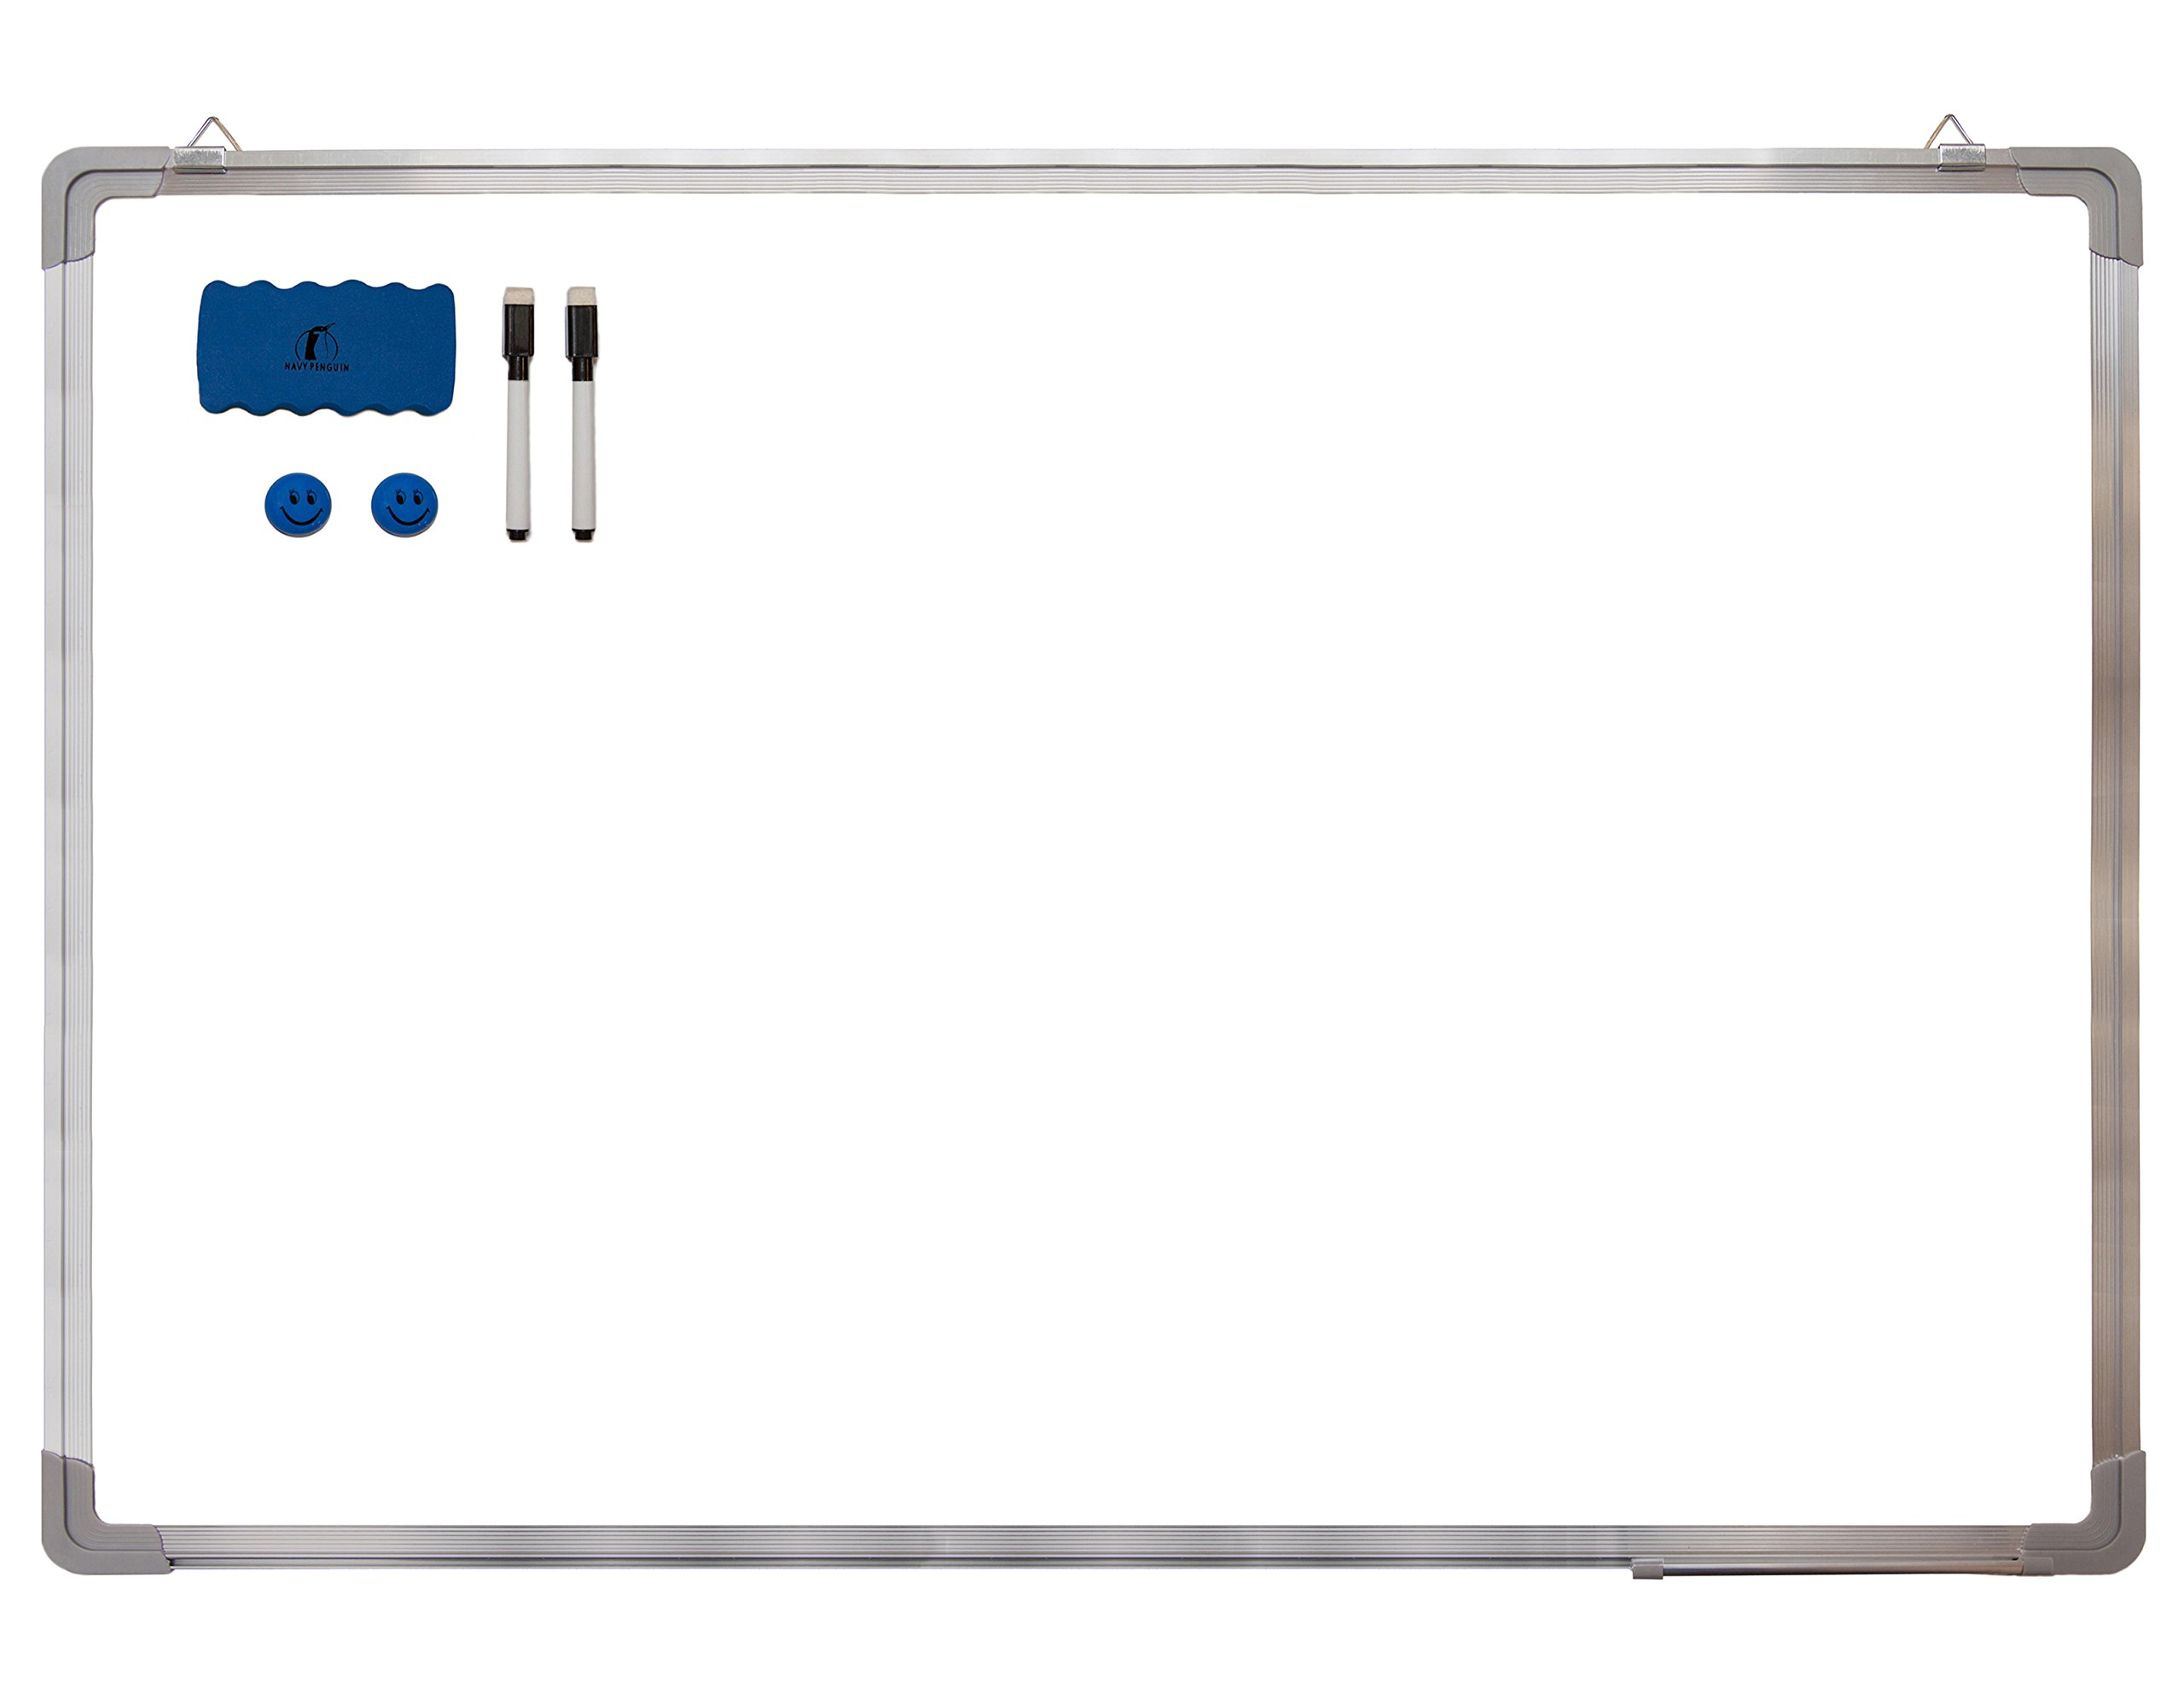 Whiteboard Set - Dry Erase Board 35 x 24 + 1 Magnetic Dry Eraser, 2 Dry-erase Black Marker Pens And 2 Magnets - Large White Hanging Message Scoreboard For Home Office School (35x24 Landscape)